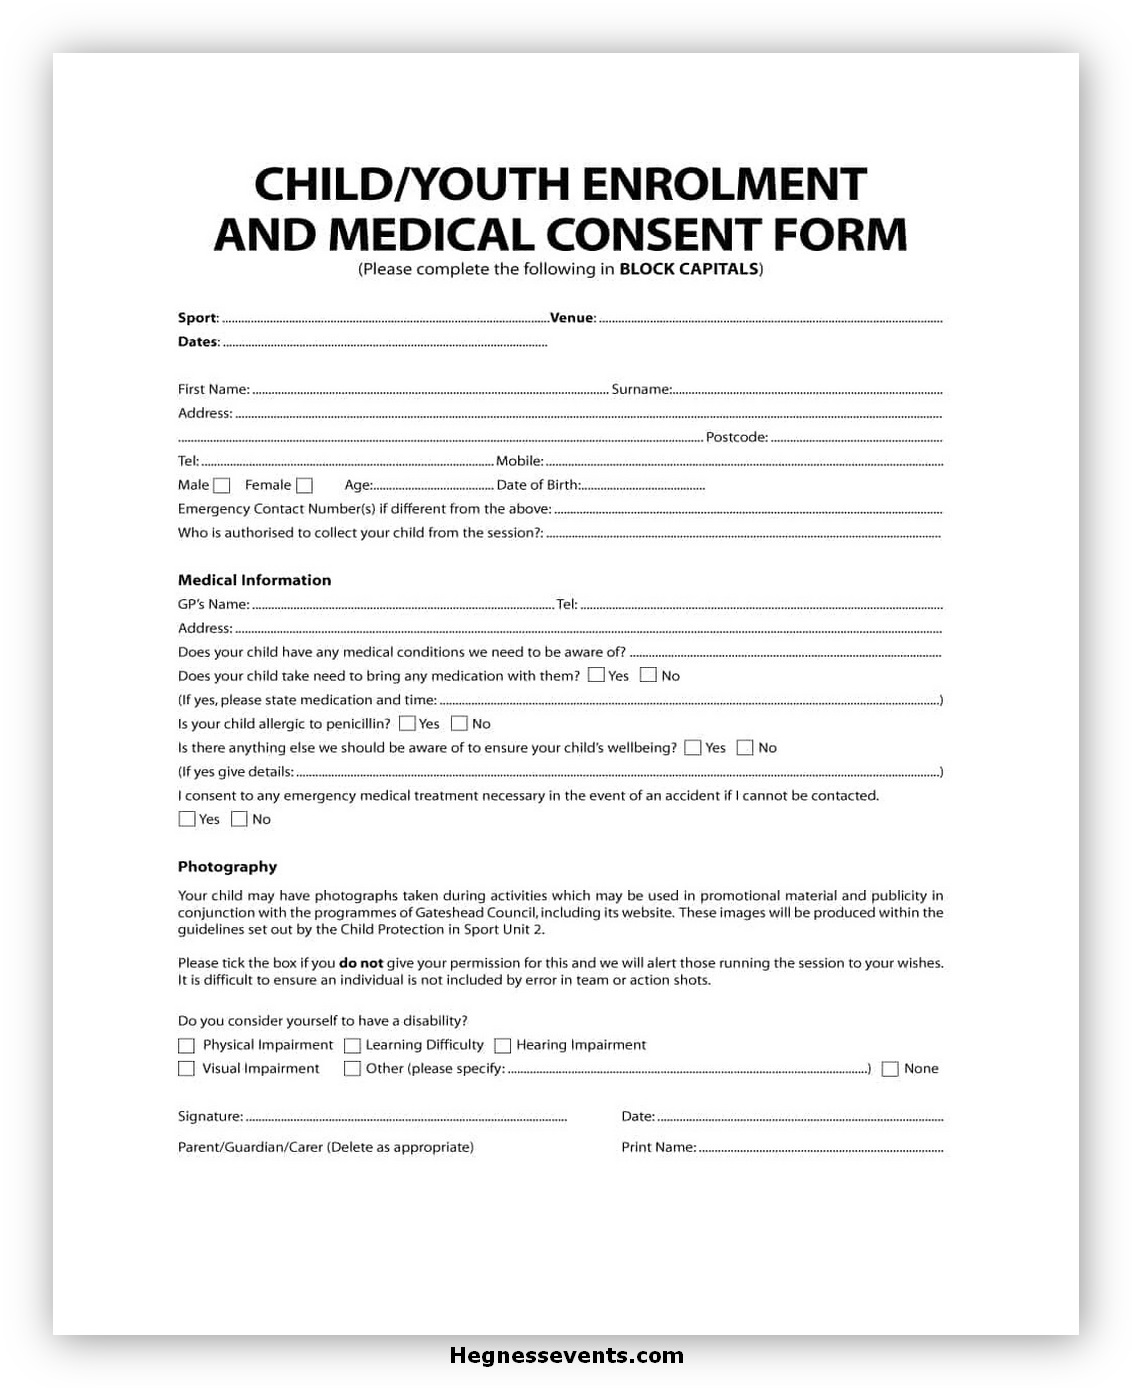 Medical Consent Form for A Child 03